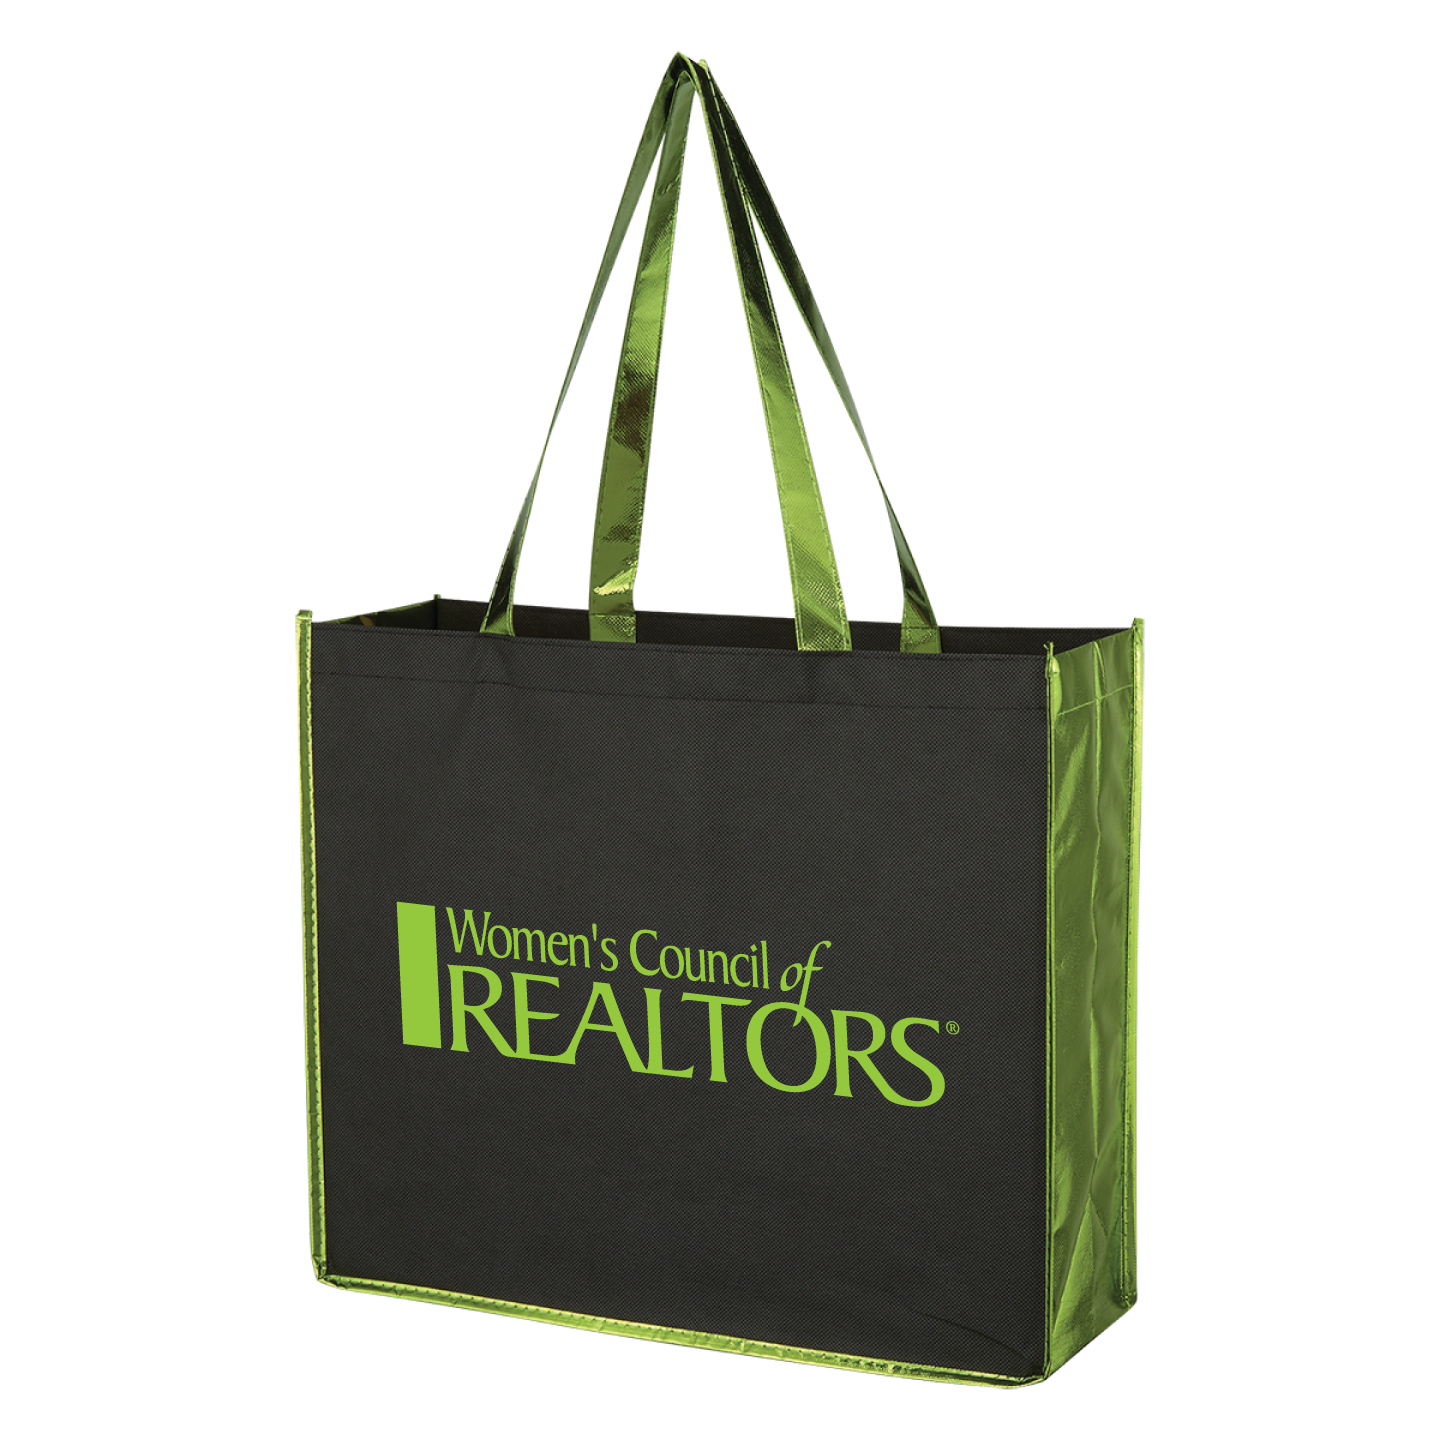 WCR Metallic Accent Convention Tote Convention, Installment, Tote, Bag, Metallic, Shiny, Sparkle, Fun, Grocery, Document, President, Network